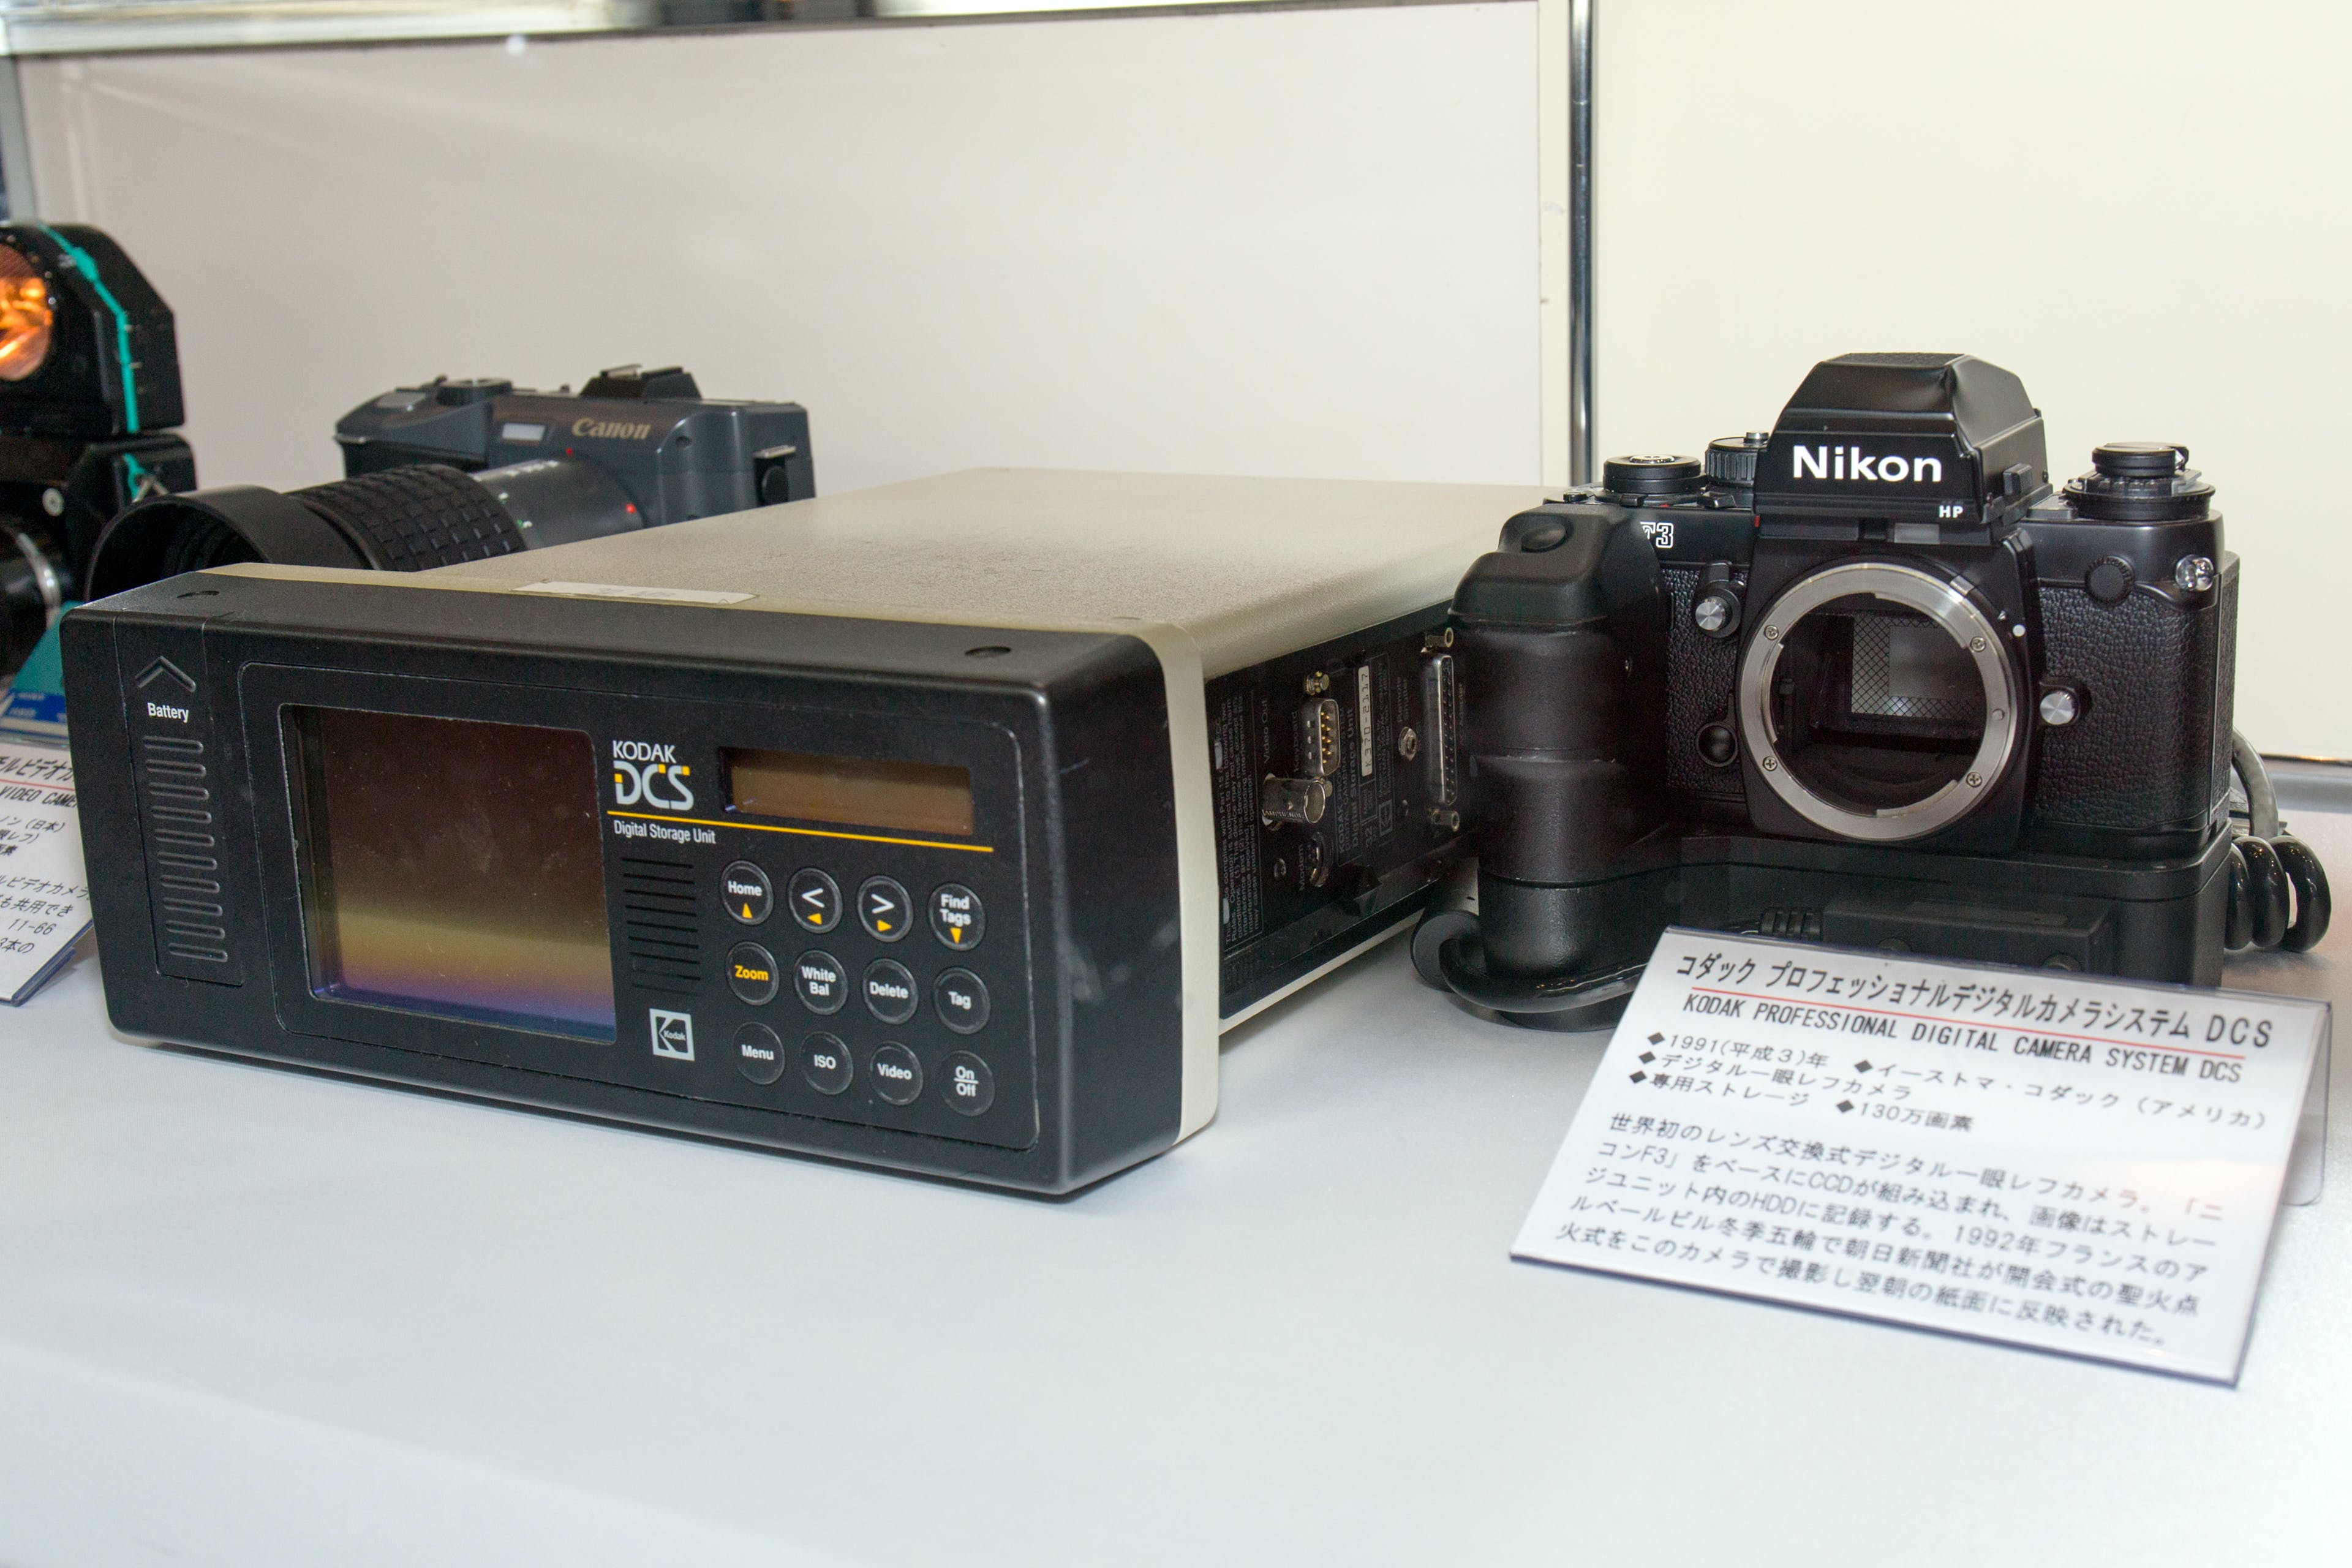 The first DSLR was the Kodak DCS 100 mounted on a Nikon F3 body